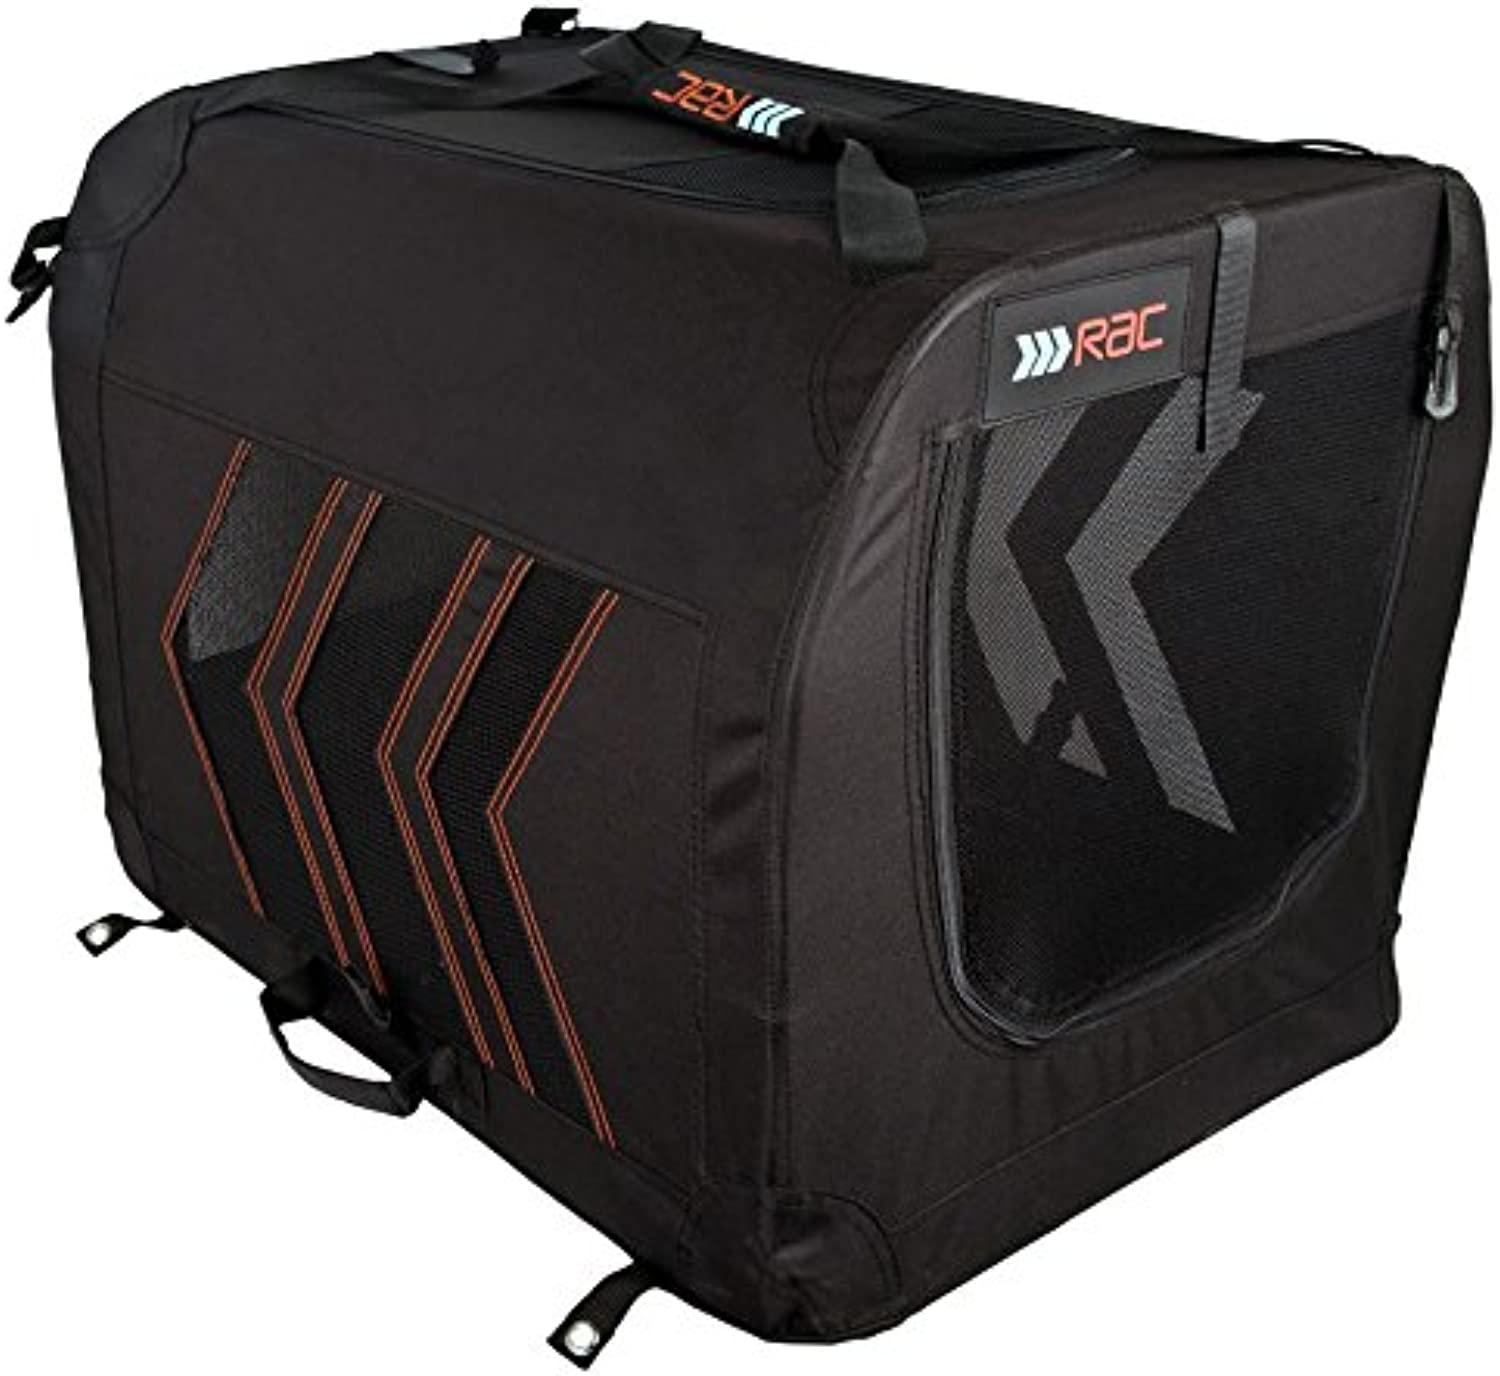 Rac Black Car Pet Carrier  Small 51x33x31cm